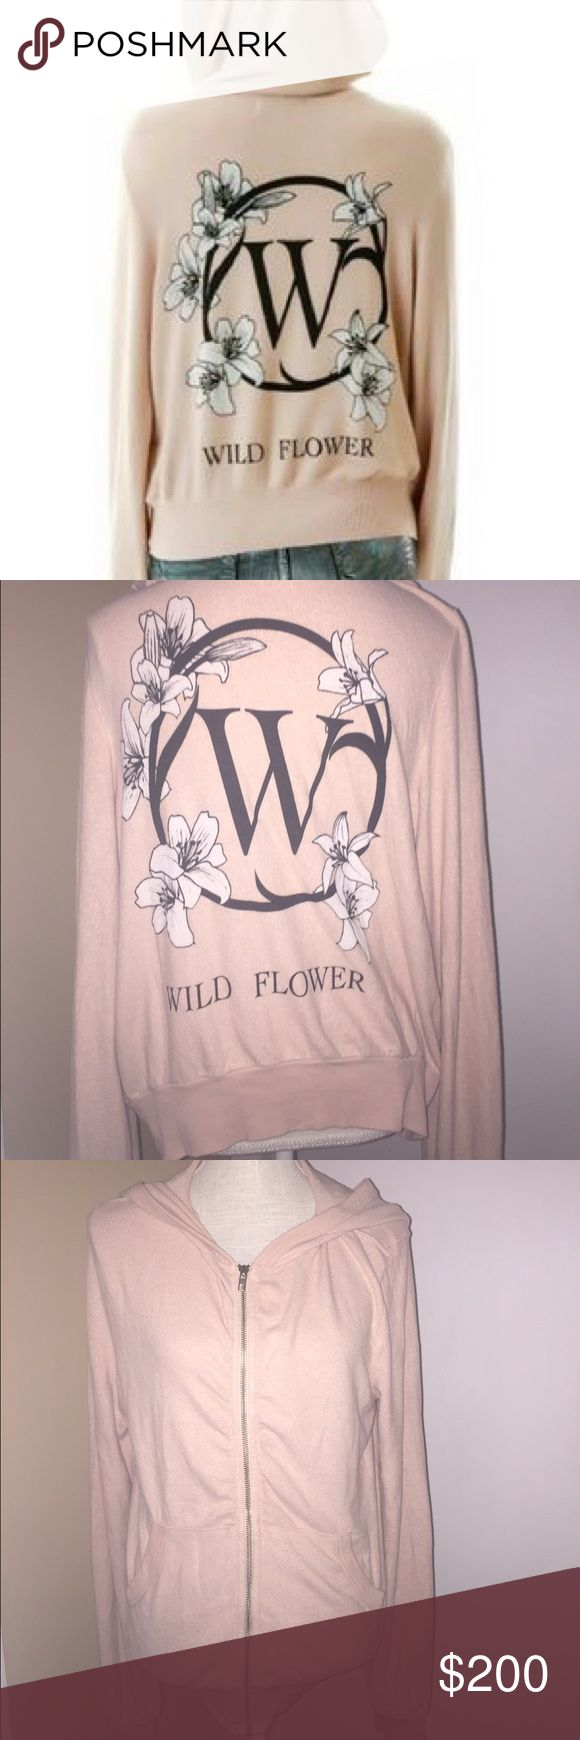 🆕 Wildfox 'Wild Flower' Malibu zip-up hoodie M NWT Wildfox Couture 'Wild Flower' Malibu Zip-Up Hoodie size Medium. Perfect brand new condition. The color is a nude not pink.  Please ask any questions you may have prior to purchasing. 🚫trades🚫 Wildfox Tops Sweatshirts & Hoodies